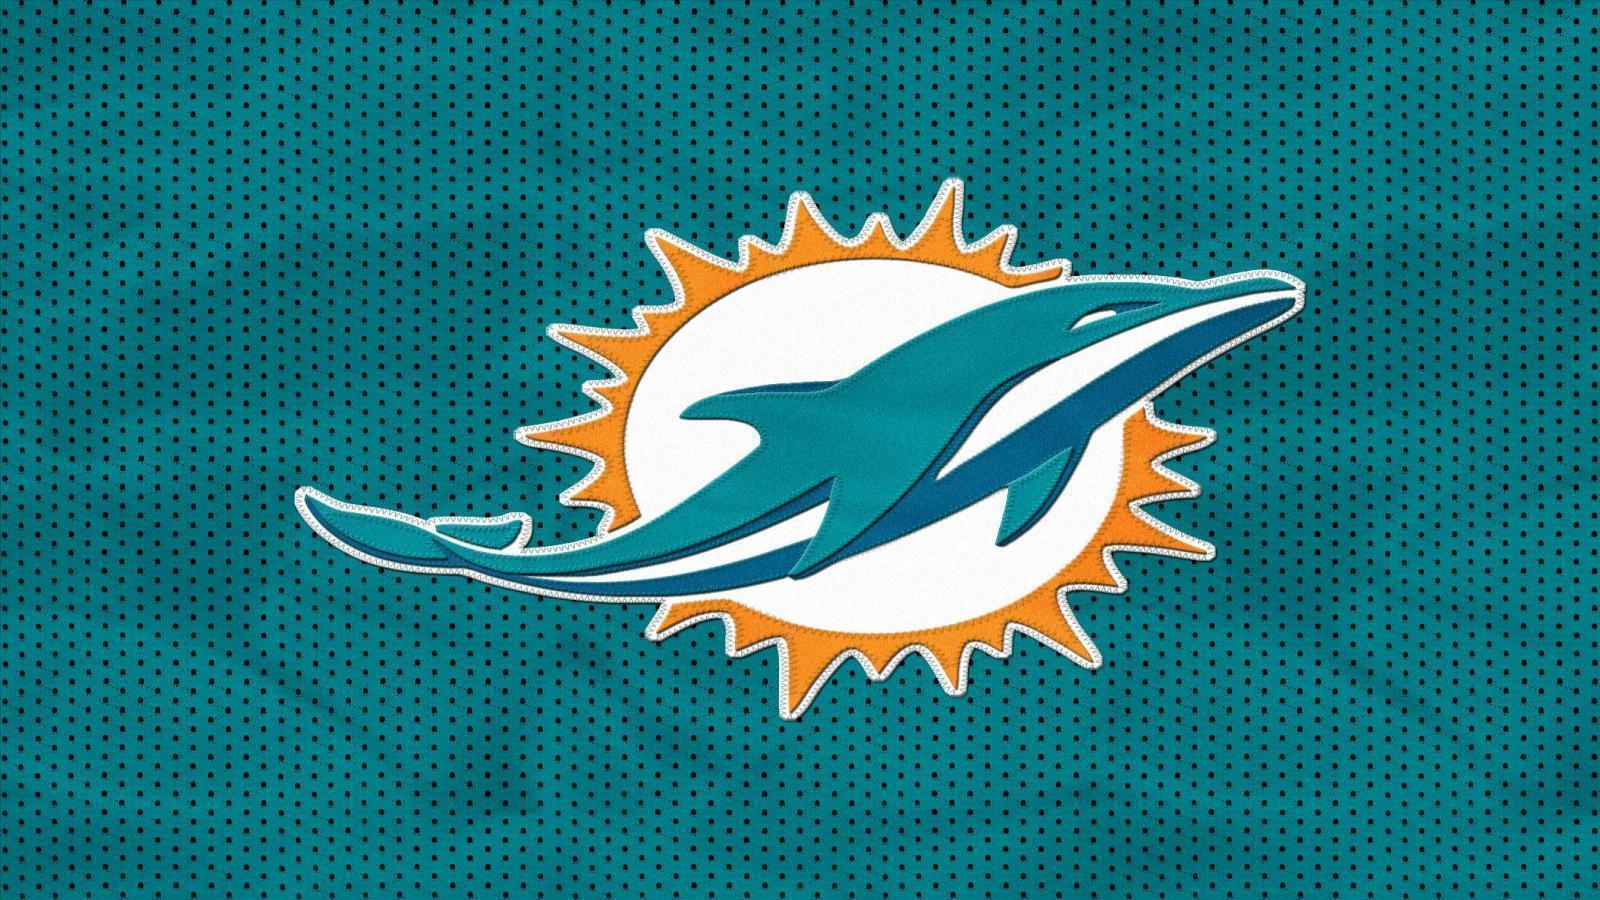 Miami Dolphins Logo Wallpapers 22474 Wallpapers